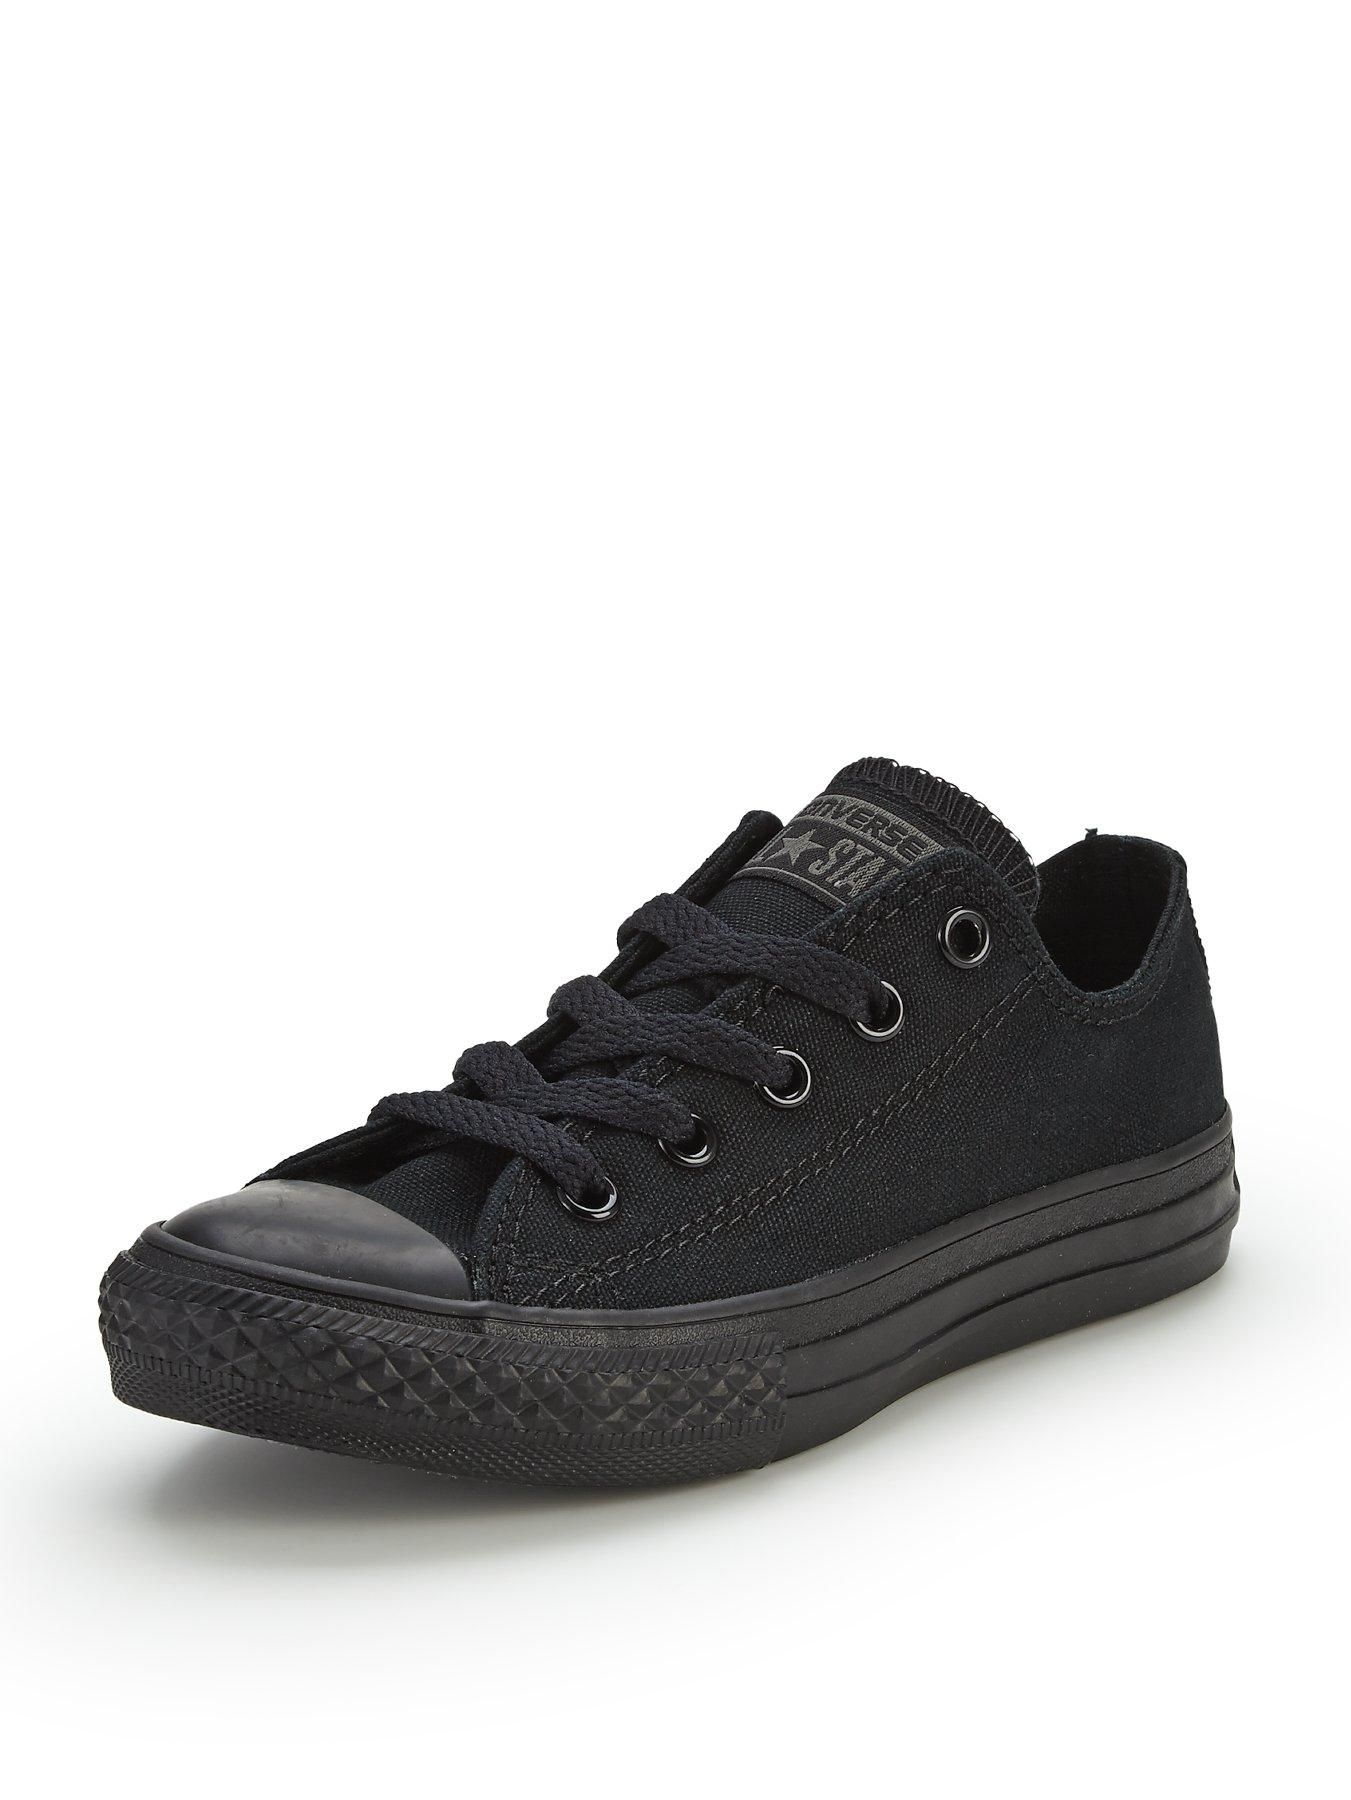 Chuck Taylor All Star Canvas Ox Core Athletic Shoe